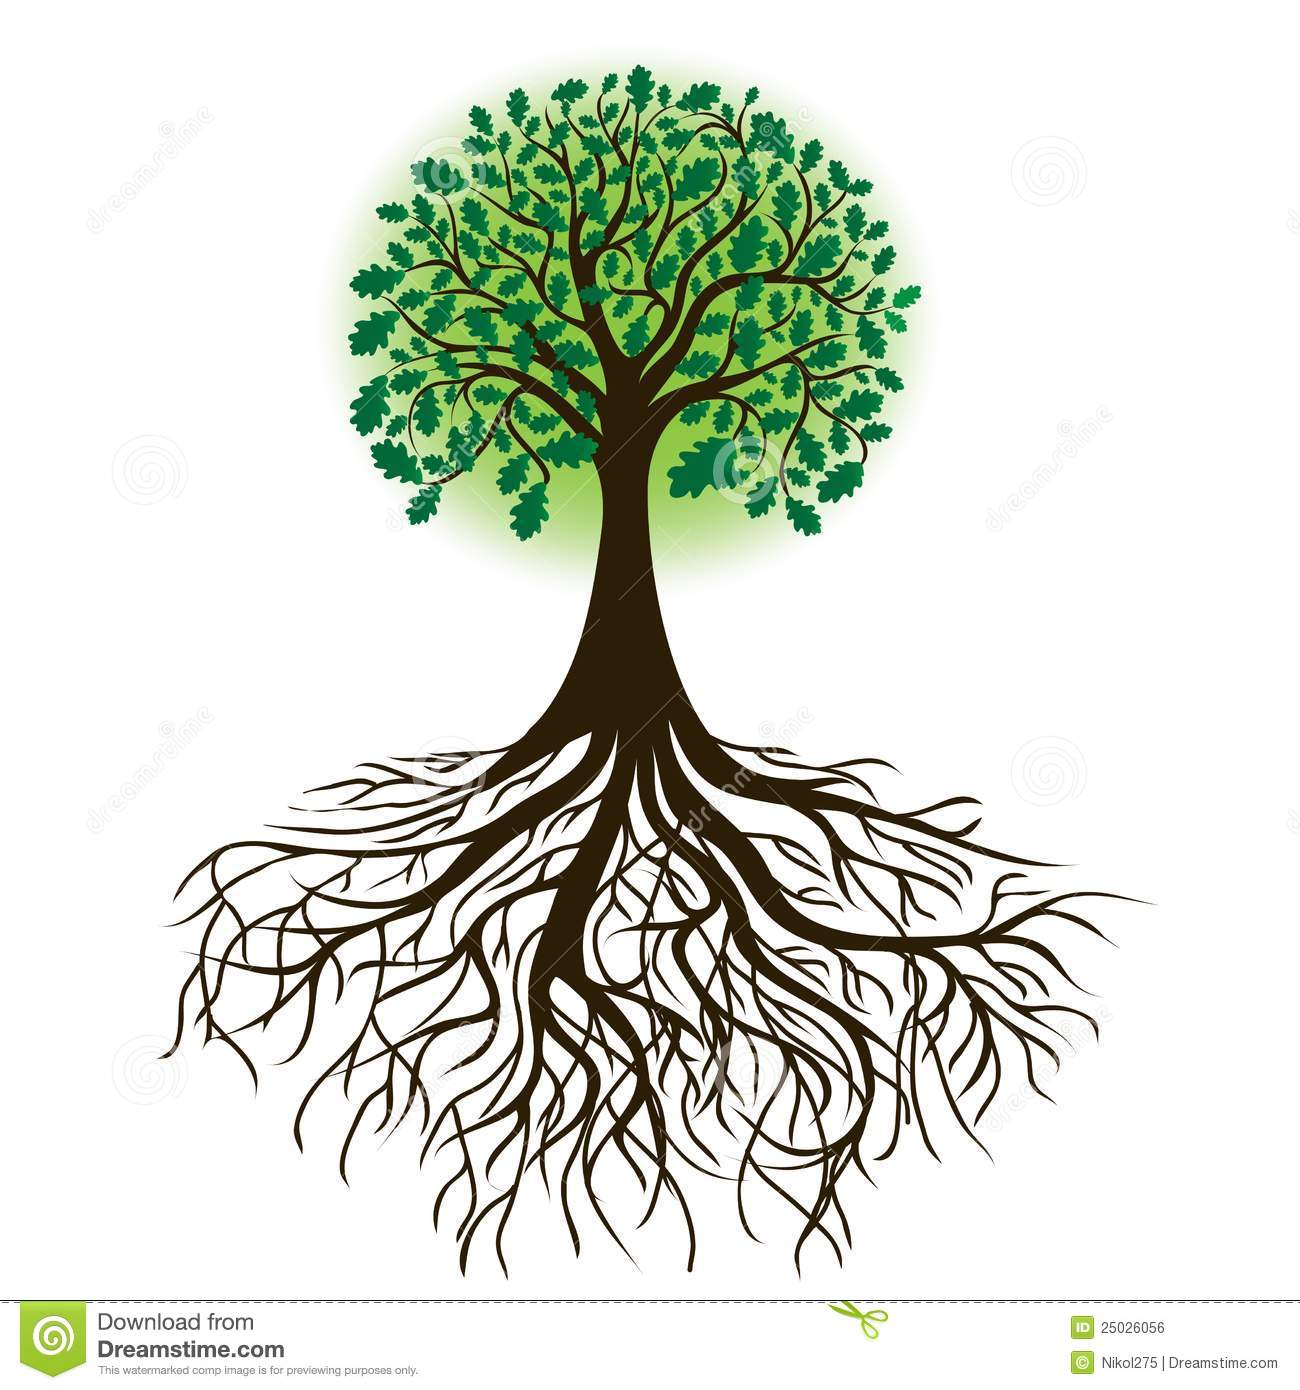 Trees With Roots Clip Art - Bing Images-trees with roots clip art - Bing images-14